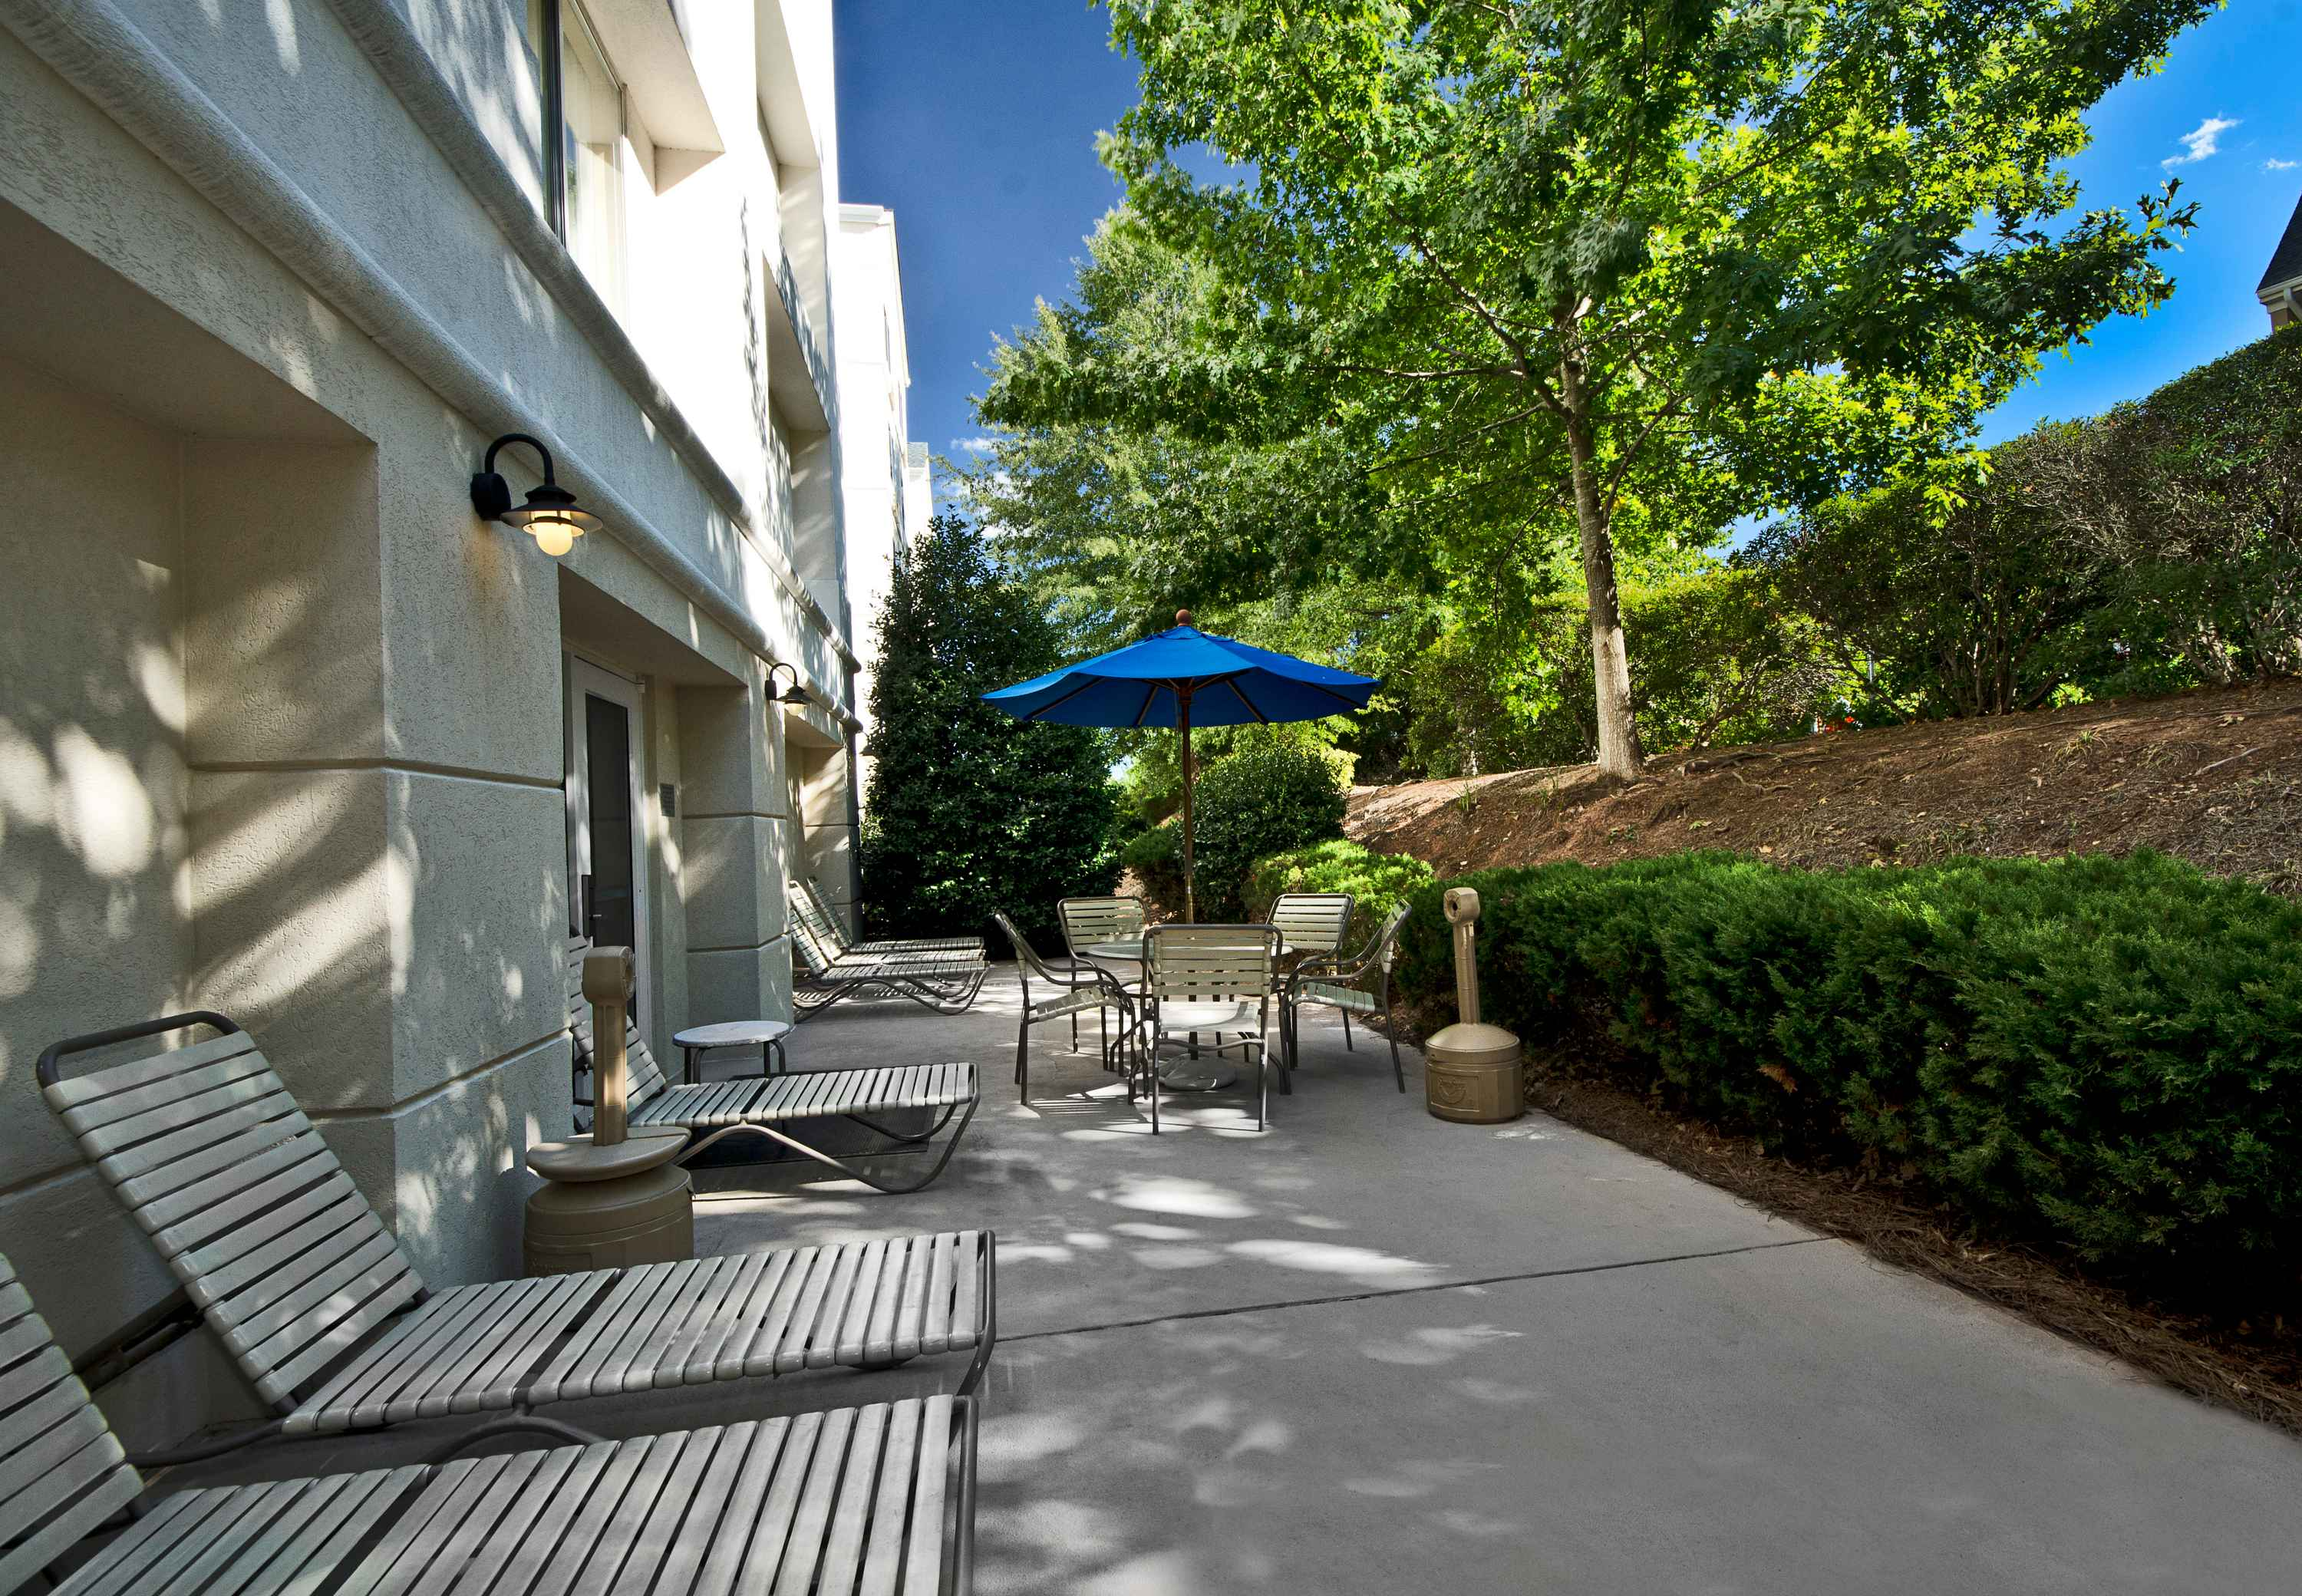 Fairfield Inn & Suites by Marriott Raleigh-Durham Airport/Research Triangle Park image 4